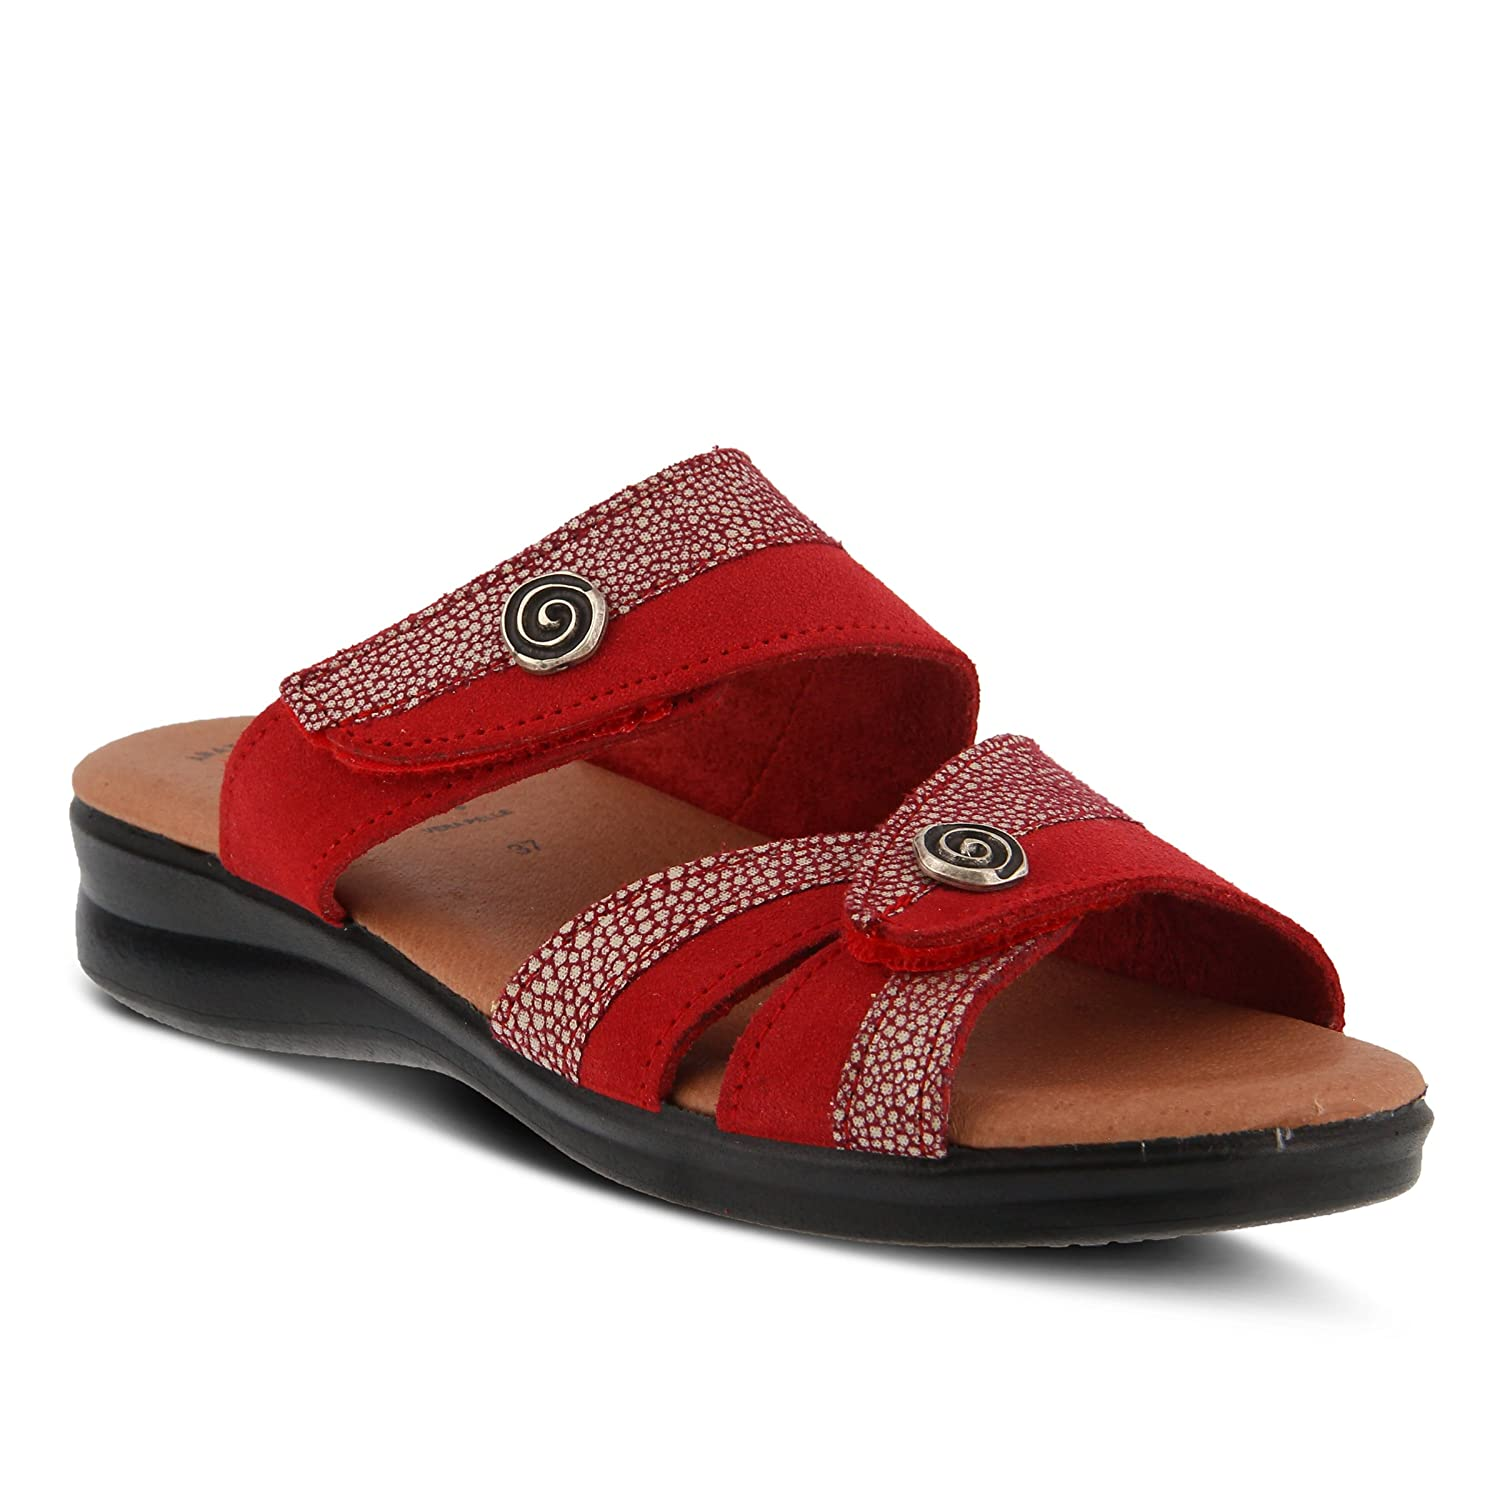 Flexus by Spring Step Women's Quasida Slide Sandal B079C3S17X 38 M EU (US 7.5-8 US)|Red/Multi